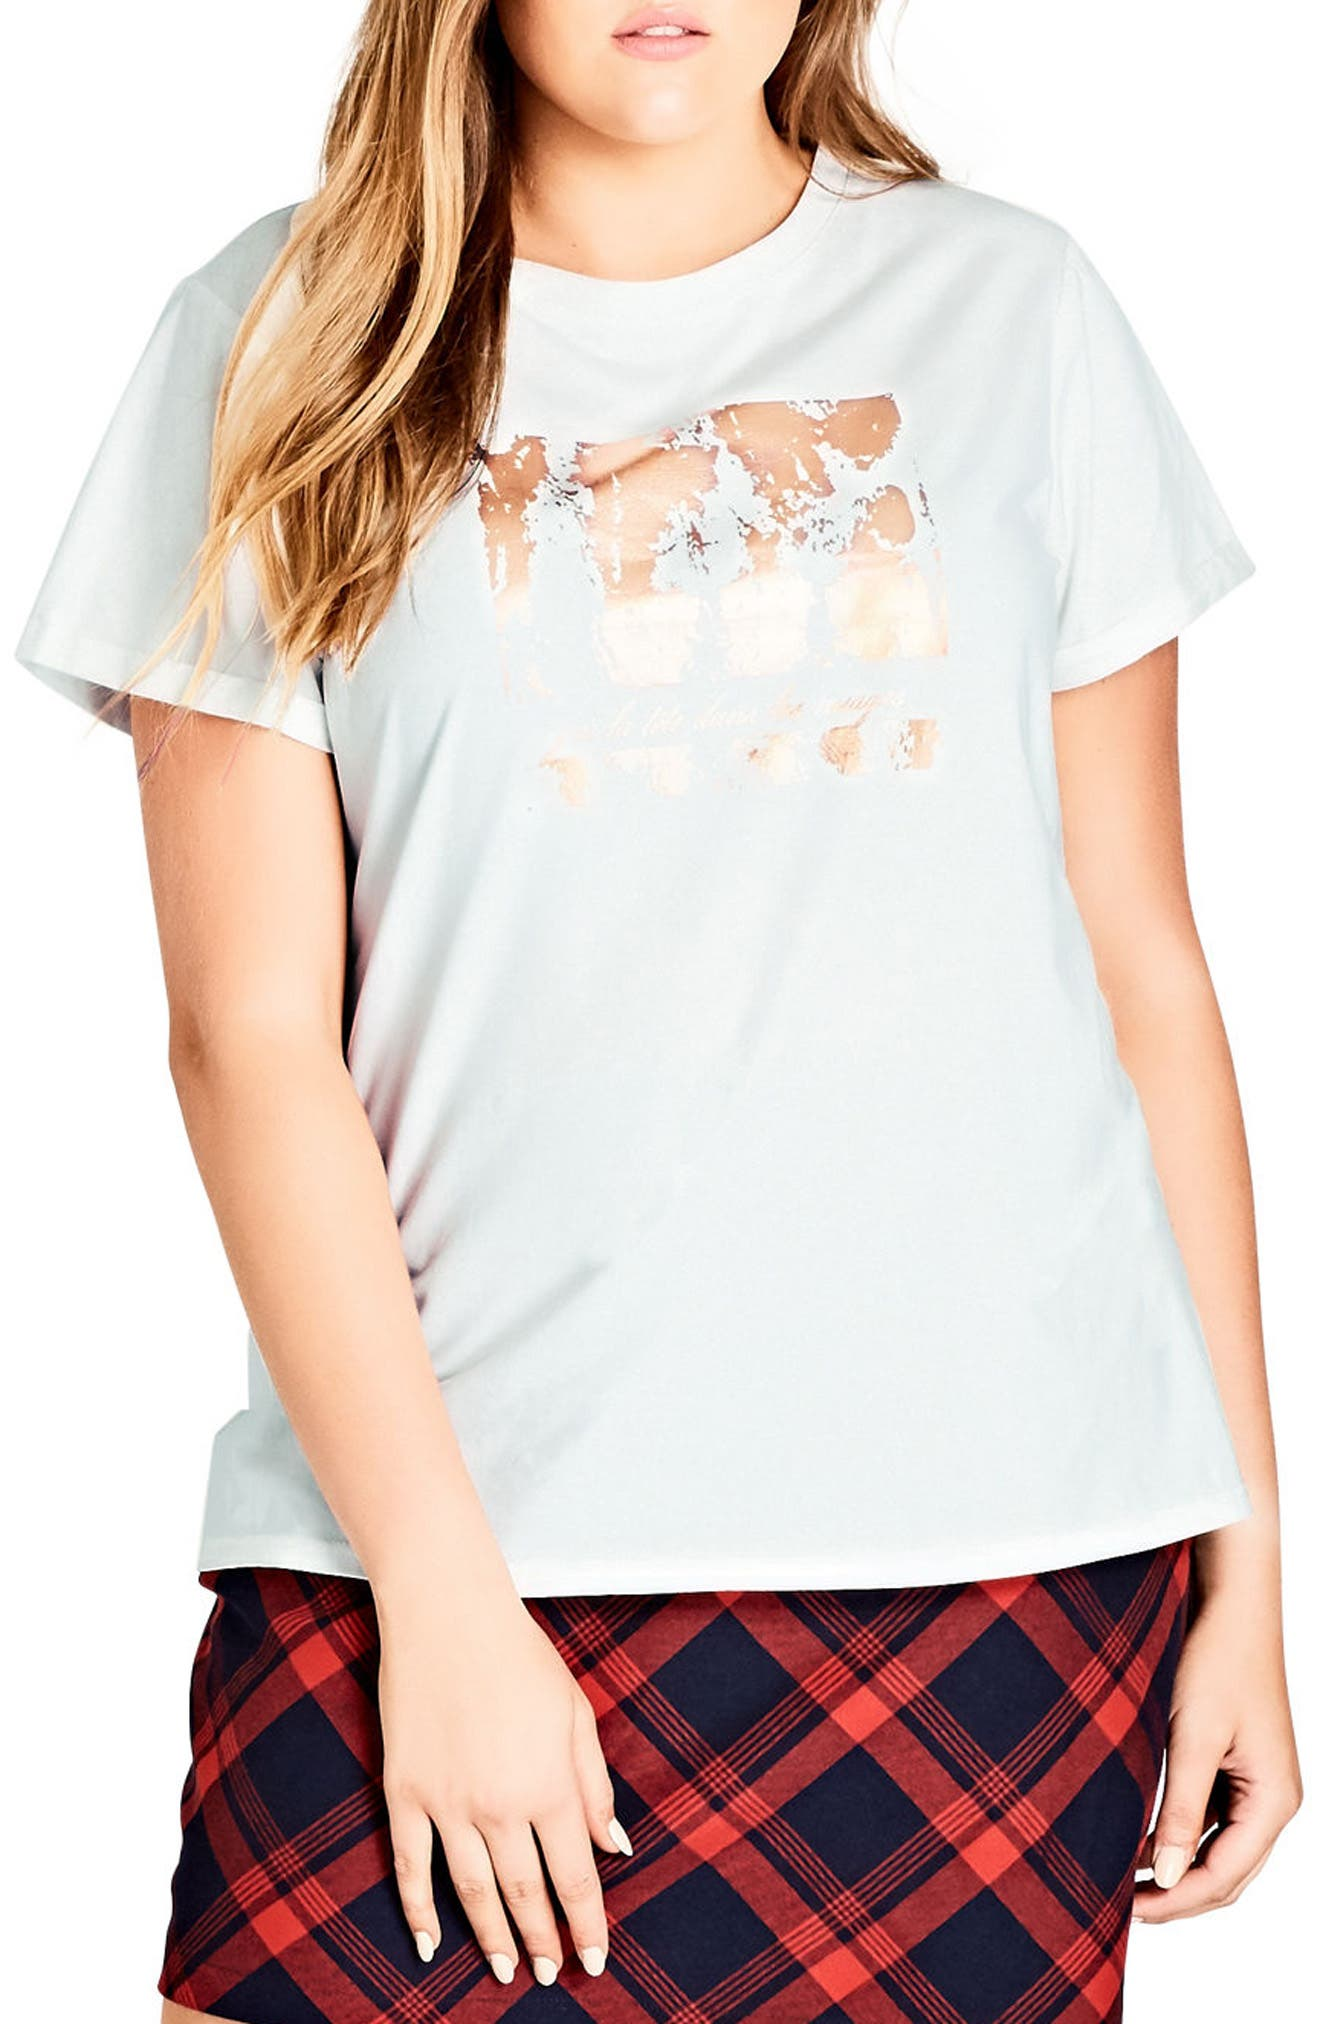 Main Image - City Chic Clouds Tee (Plus Size)